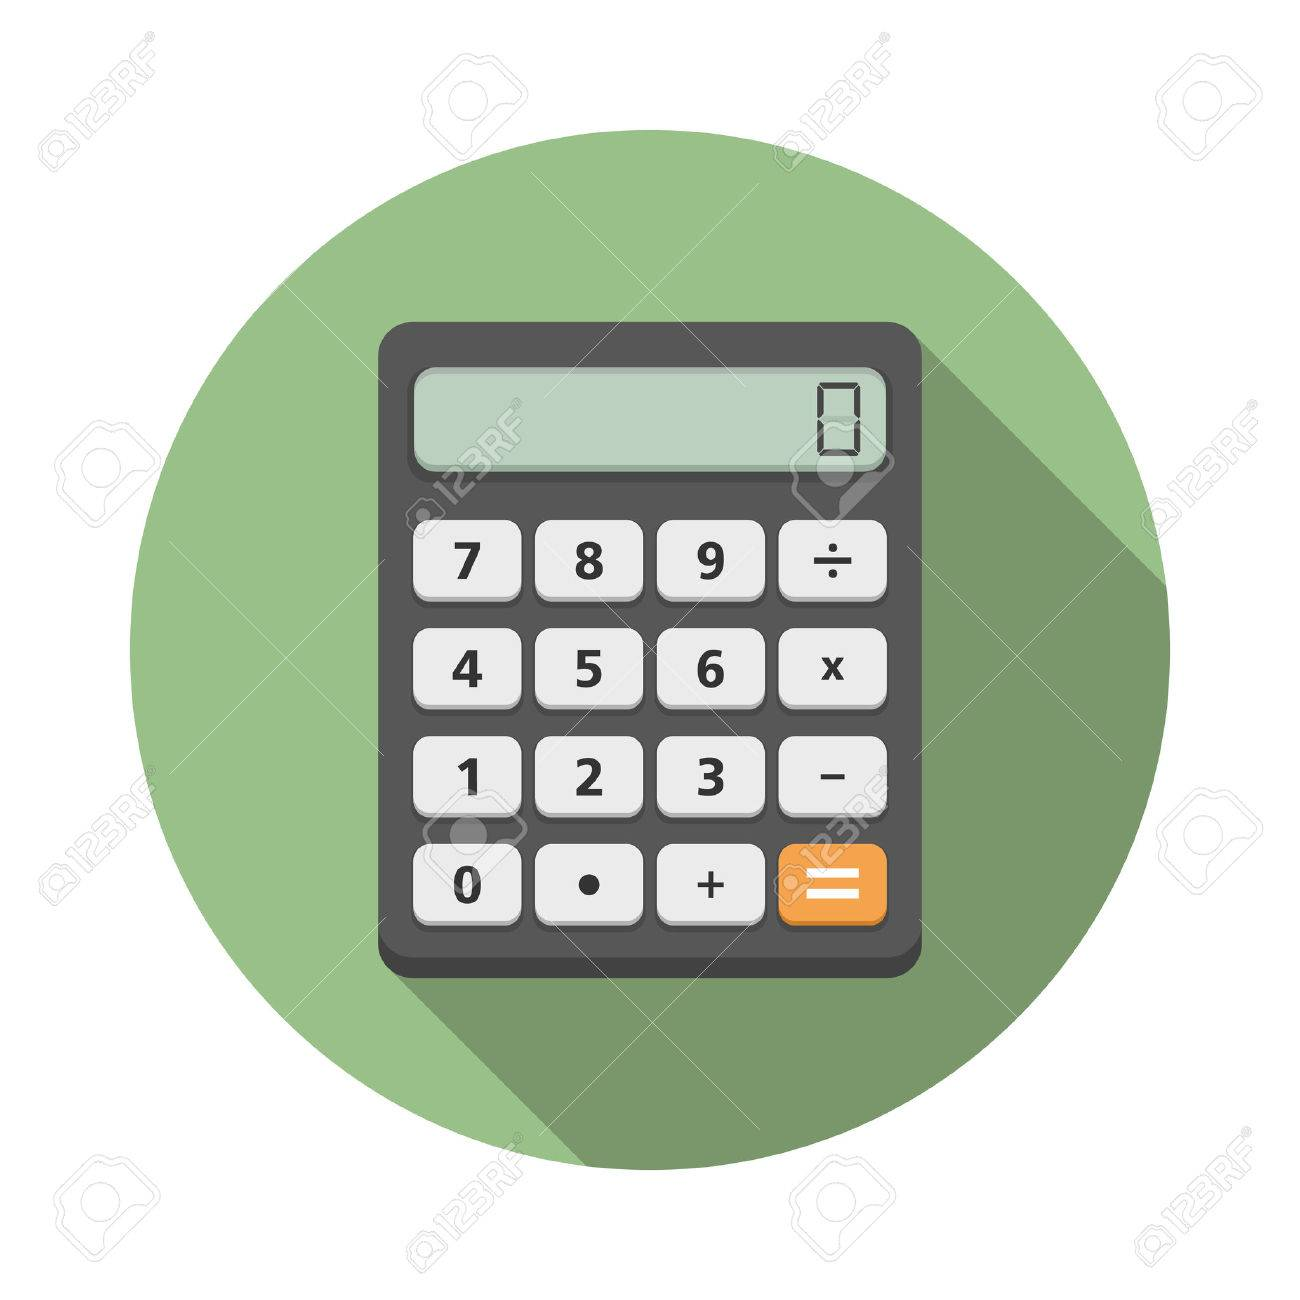 Calculator iccon in circle, flat design with long shadow - 46911169